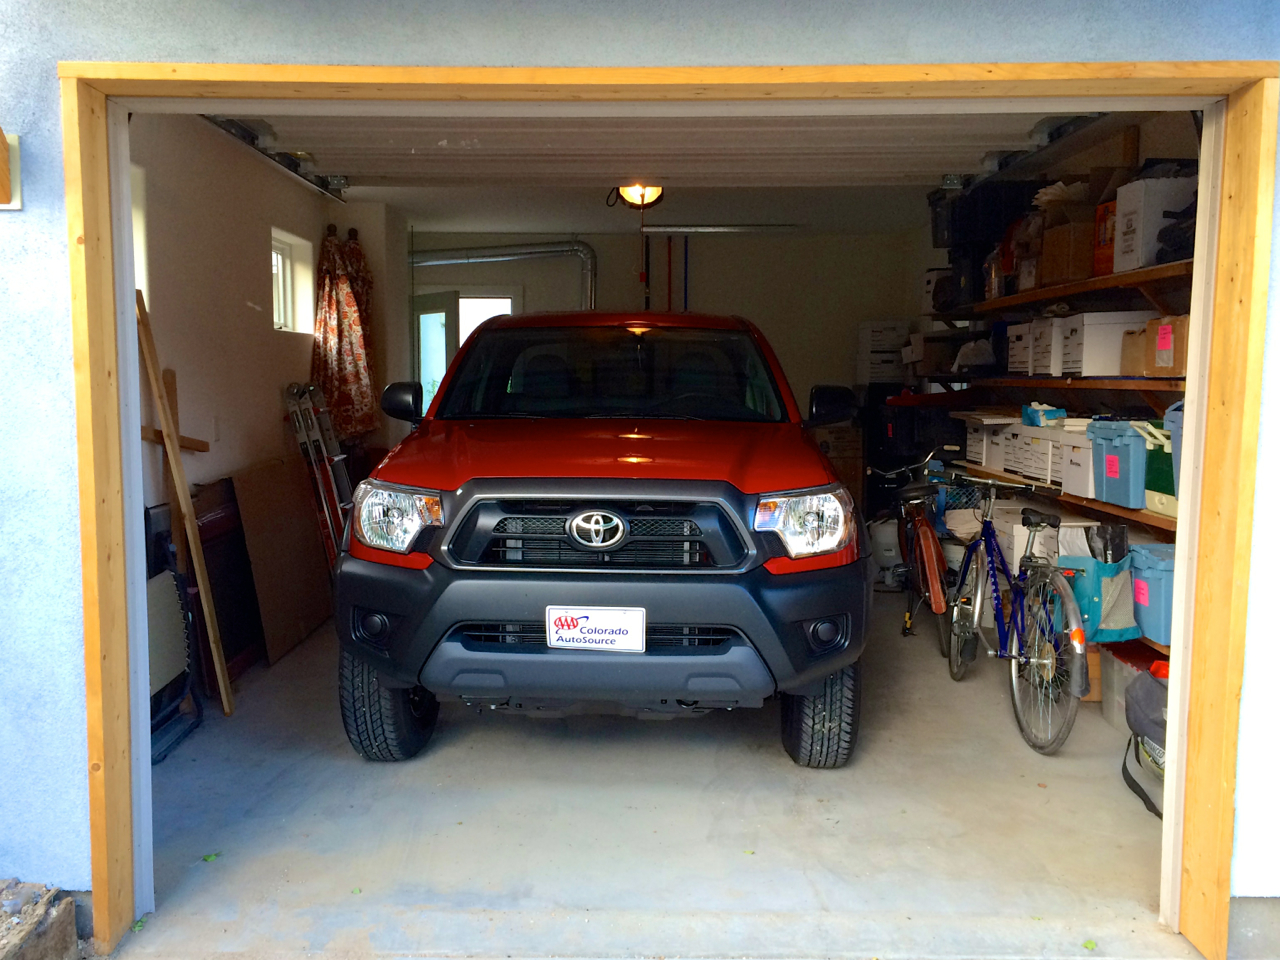 A truck? In my tiny garage?